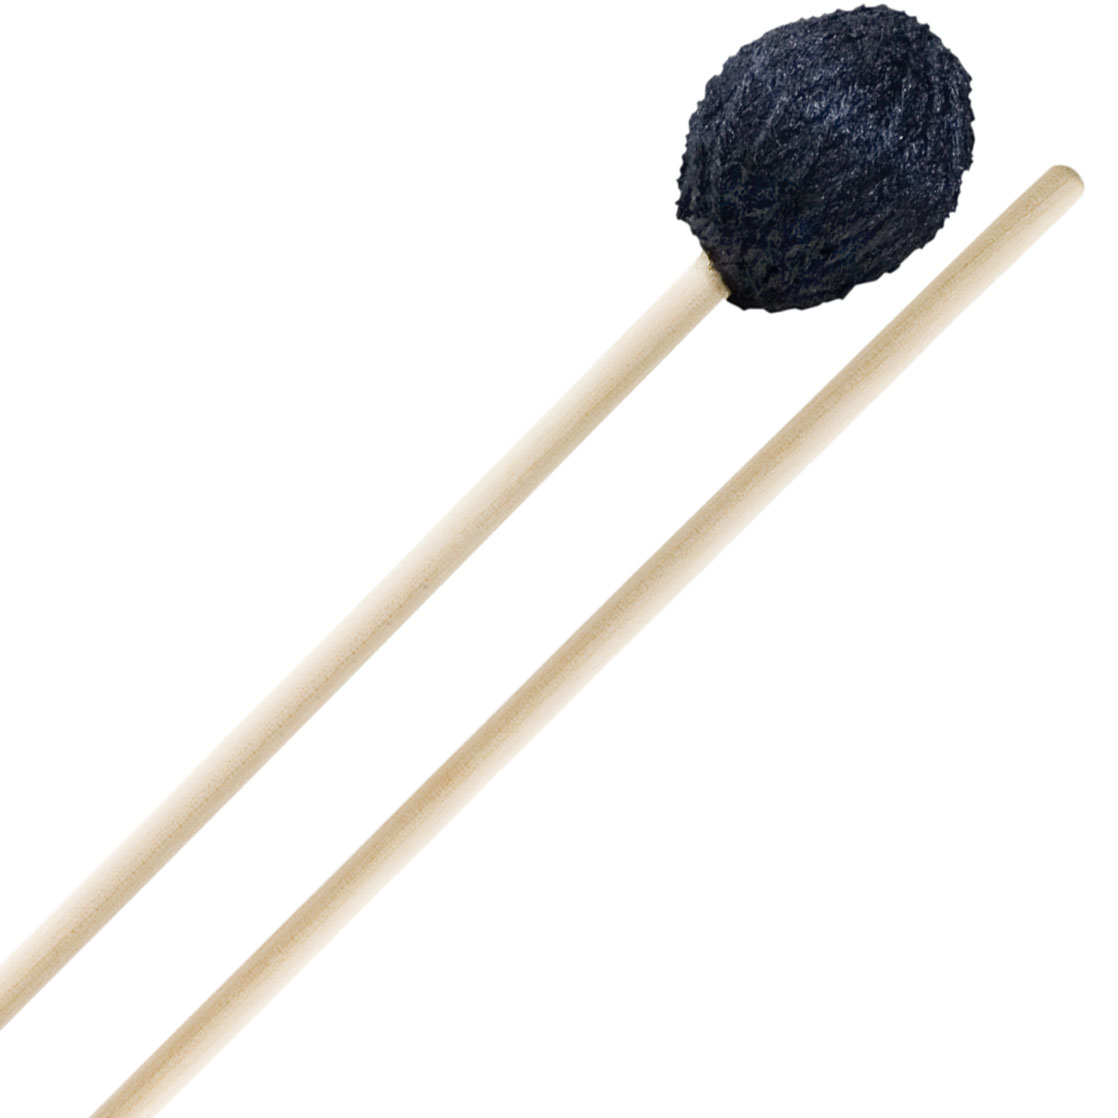 Promark Performer Series Medium Soft Marimba Mallets